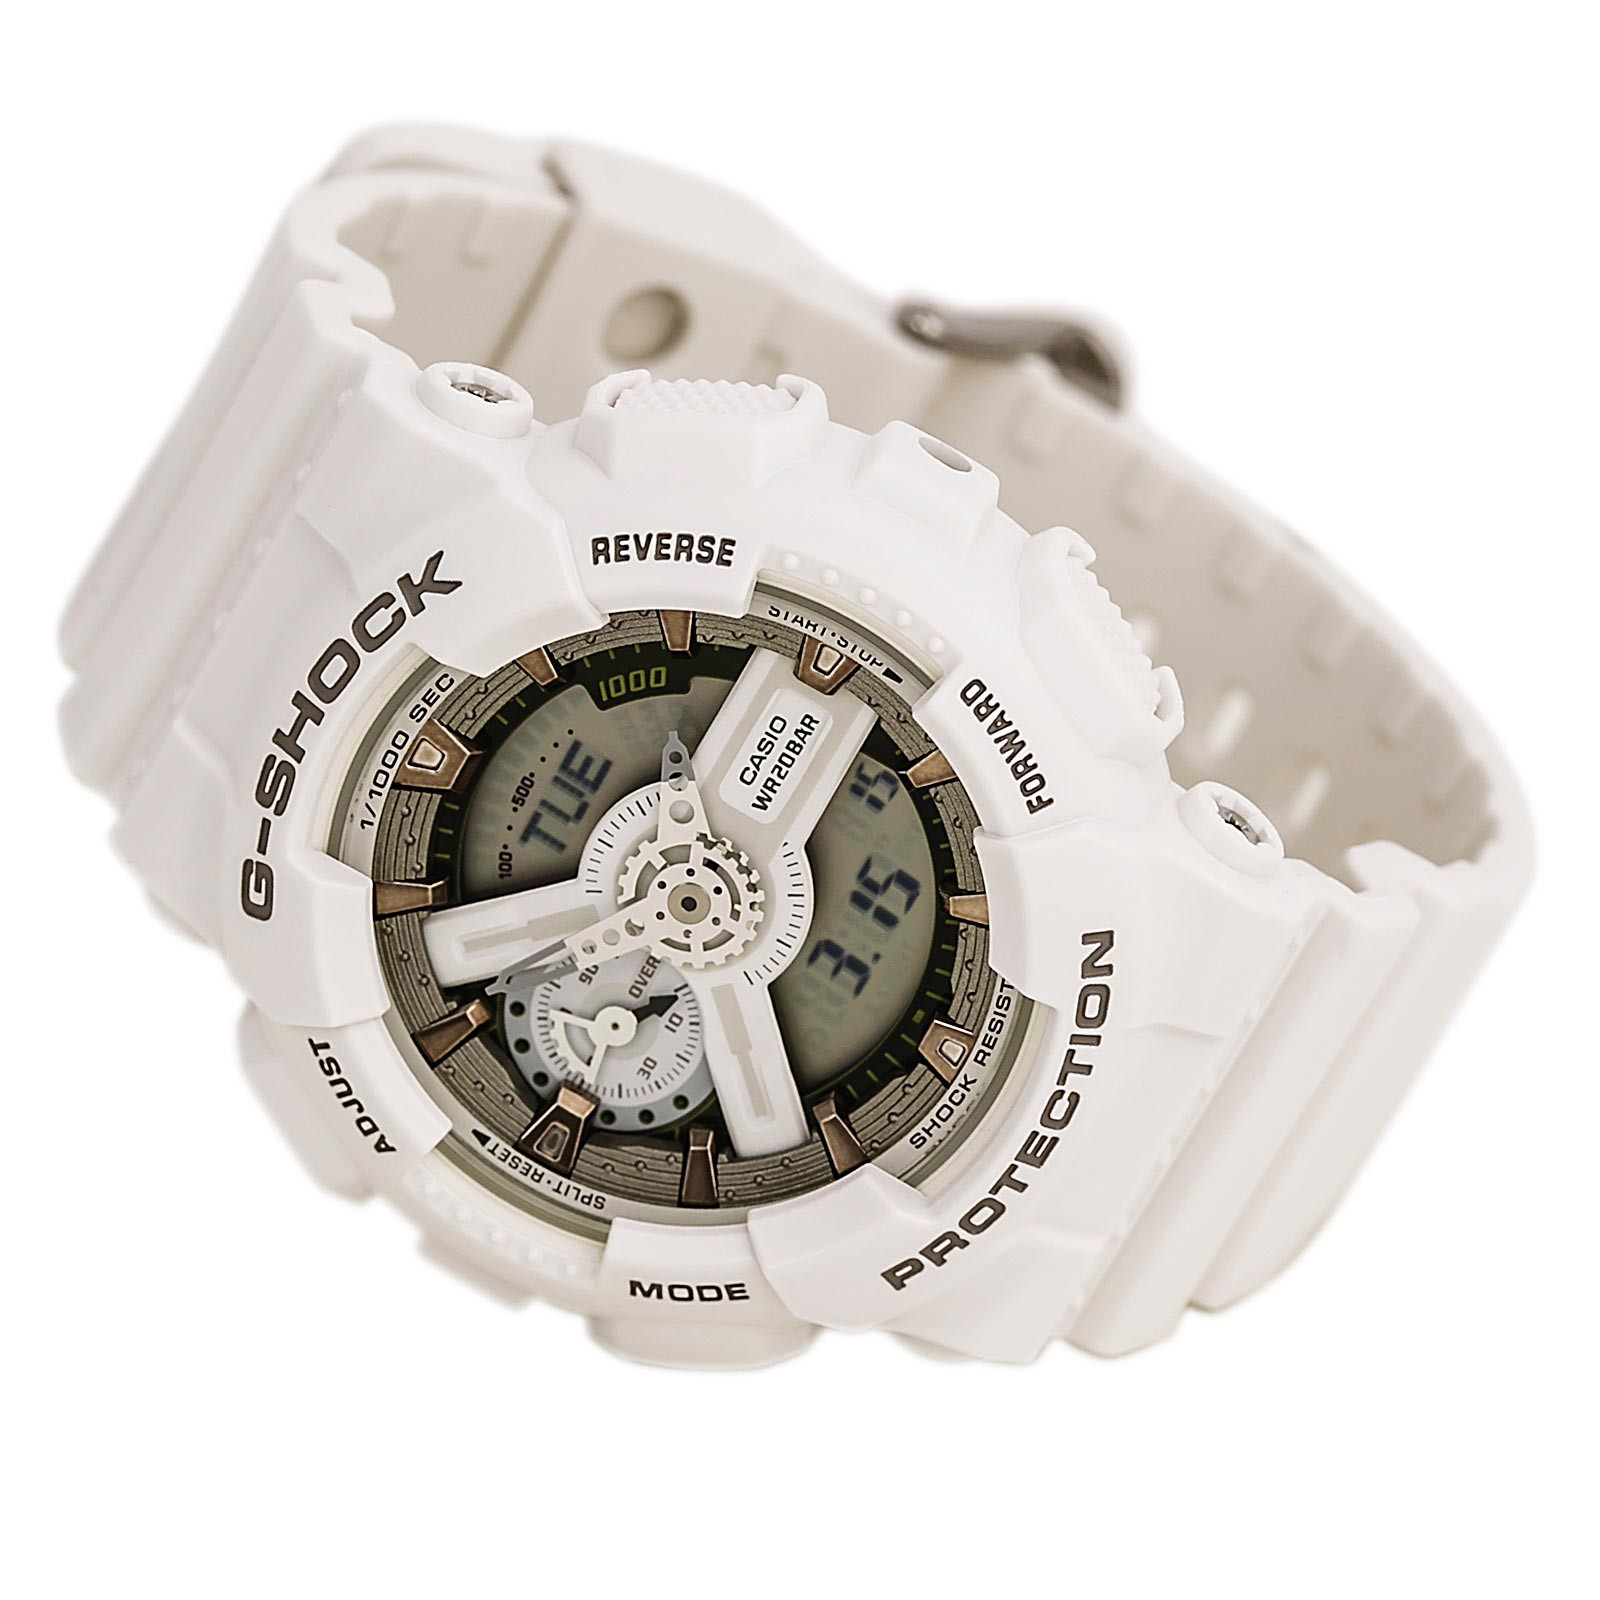 Casio GMAS110CM-7A2 Men's G-Shock S Series Ana-Digi Dial White Resin World Time Dive Watch